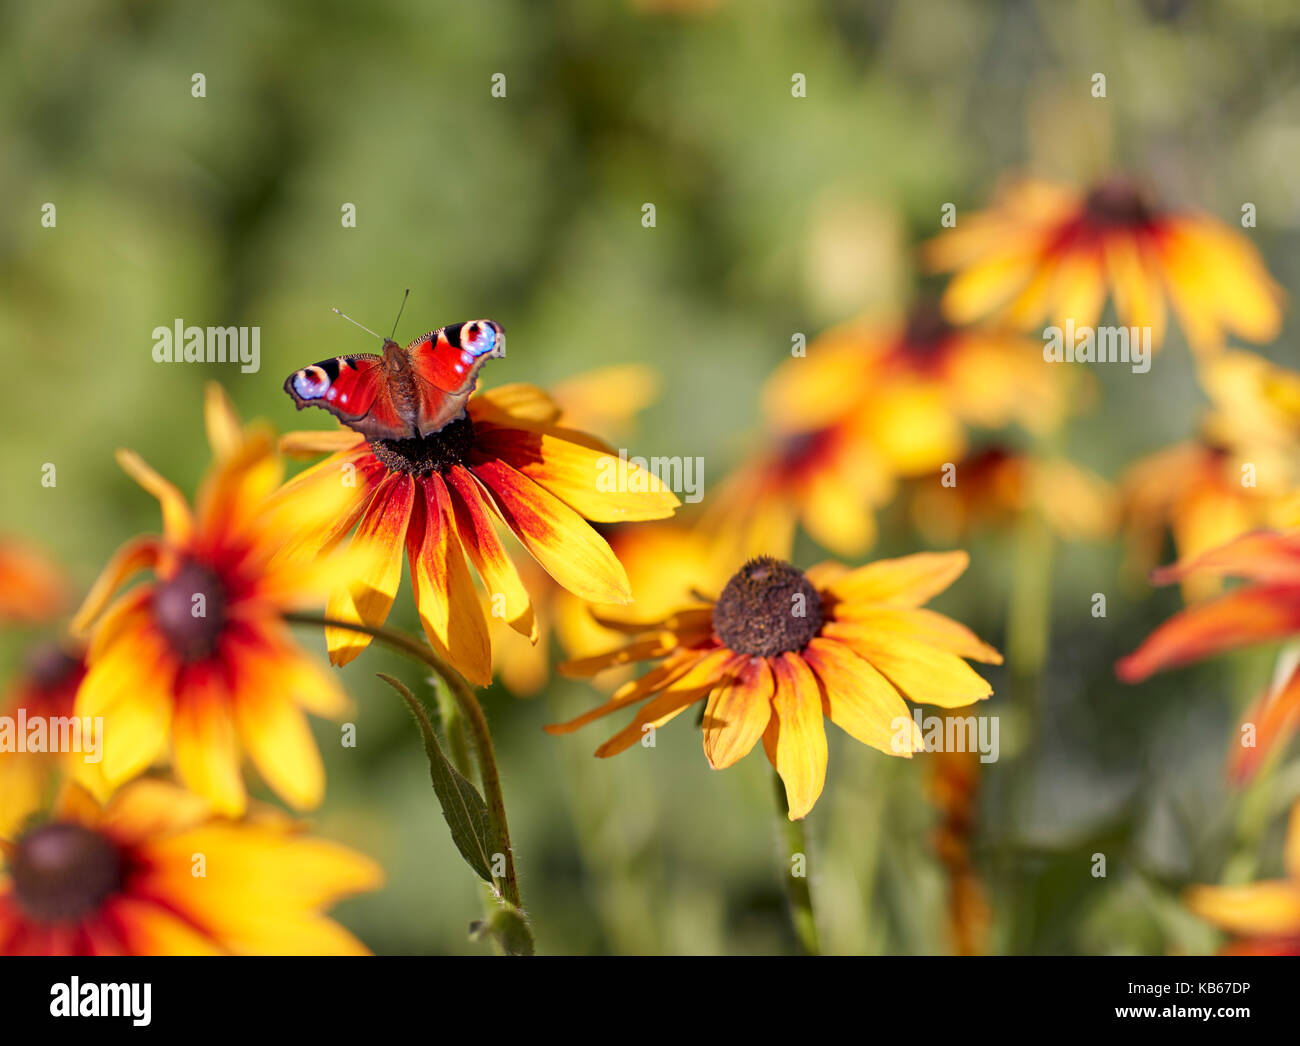 Peacock butterfly (Aglais io) perched on Rudbeckia (Rudbeckia hirta) flower. - Stock Image